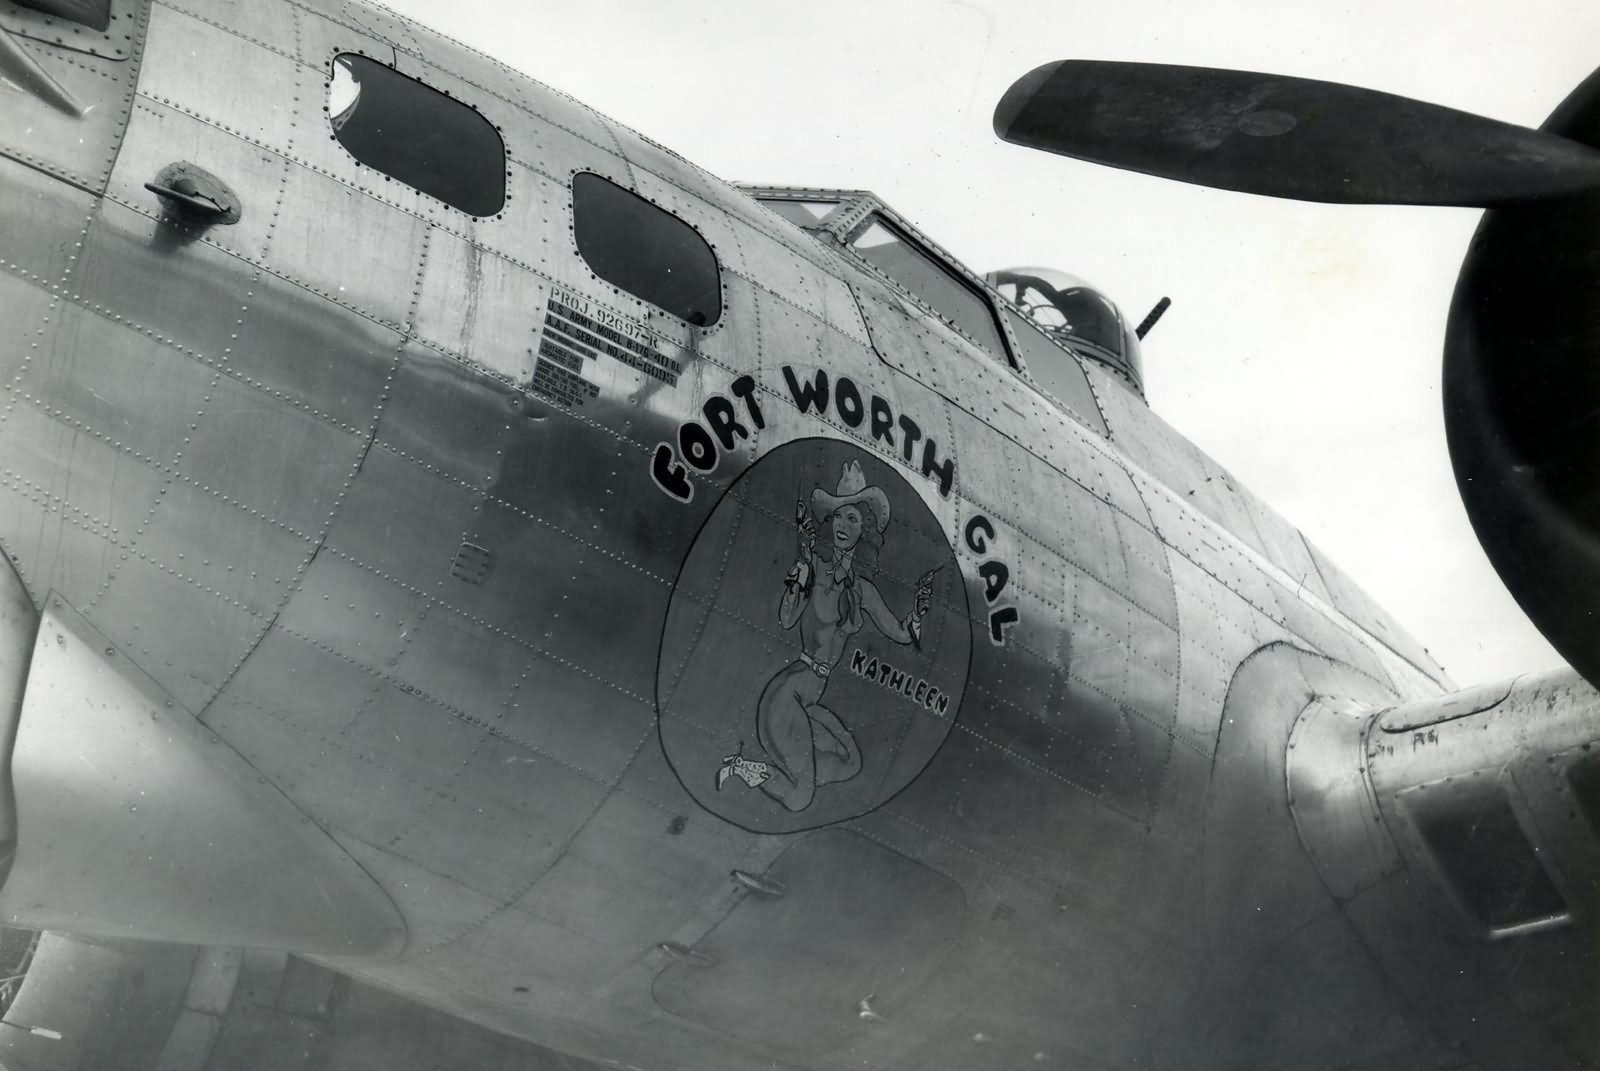 Boeing B-17G Nose Art Fort Worth Gal / Kathleen of the 381st Bomb Group 533rd Bomb Squadron